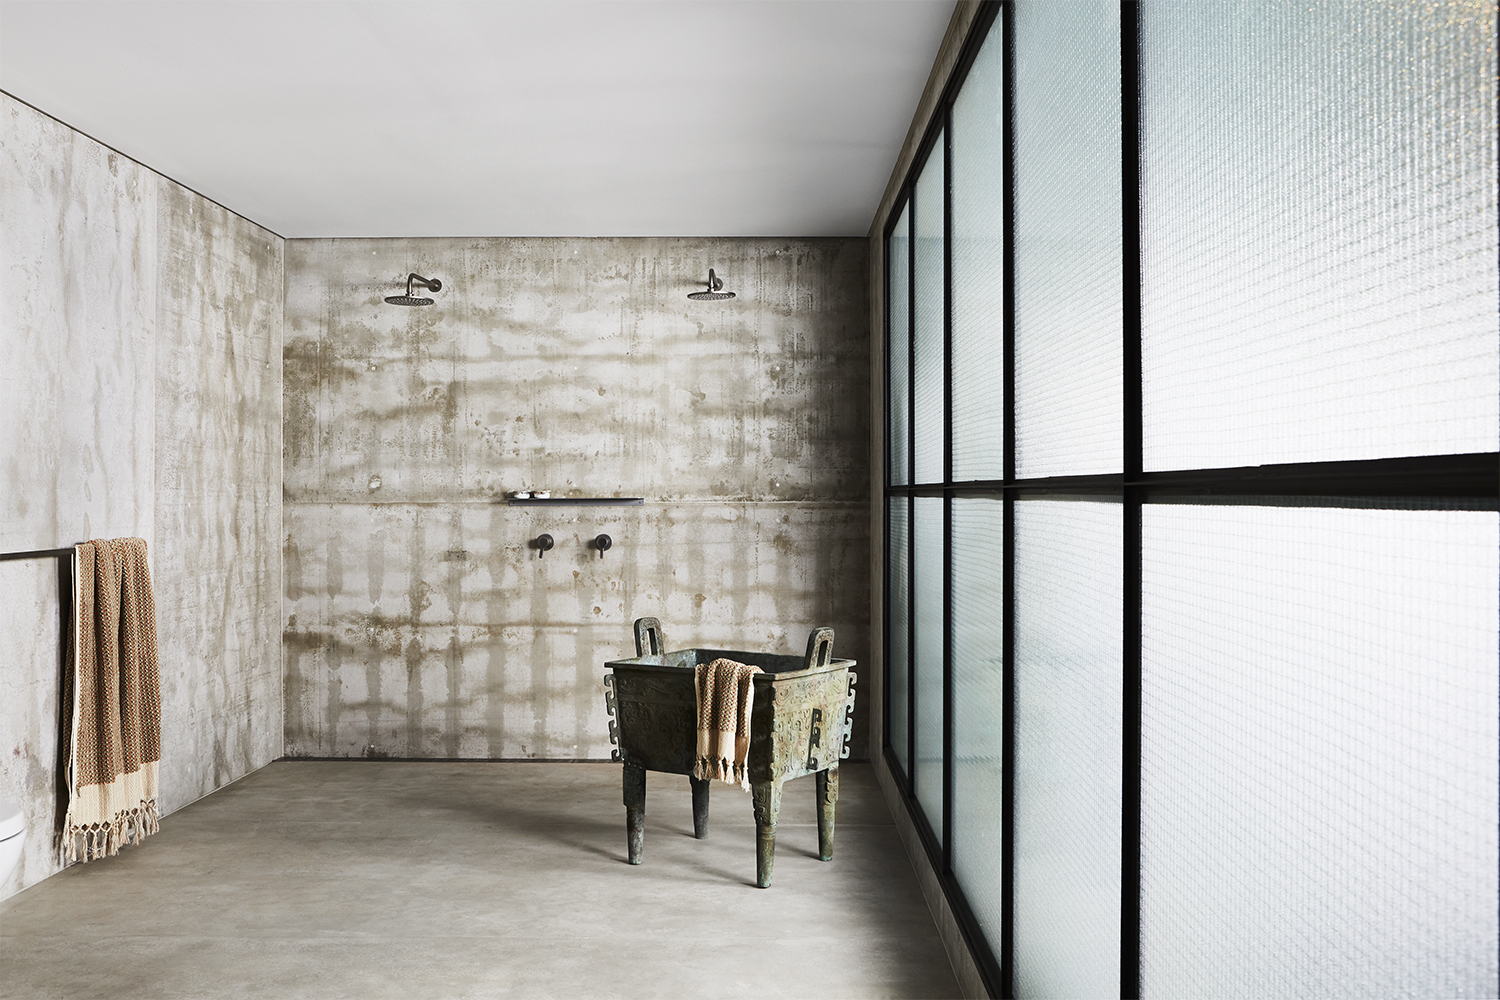 The Great Dane Apartment, then, is a space that translates the influential memory of place into a contemporary expression.